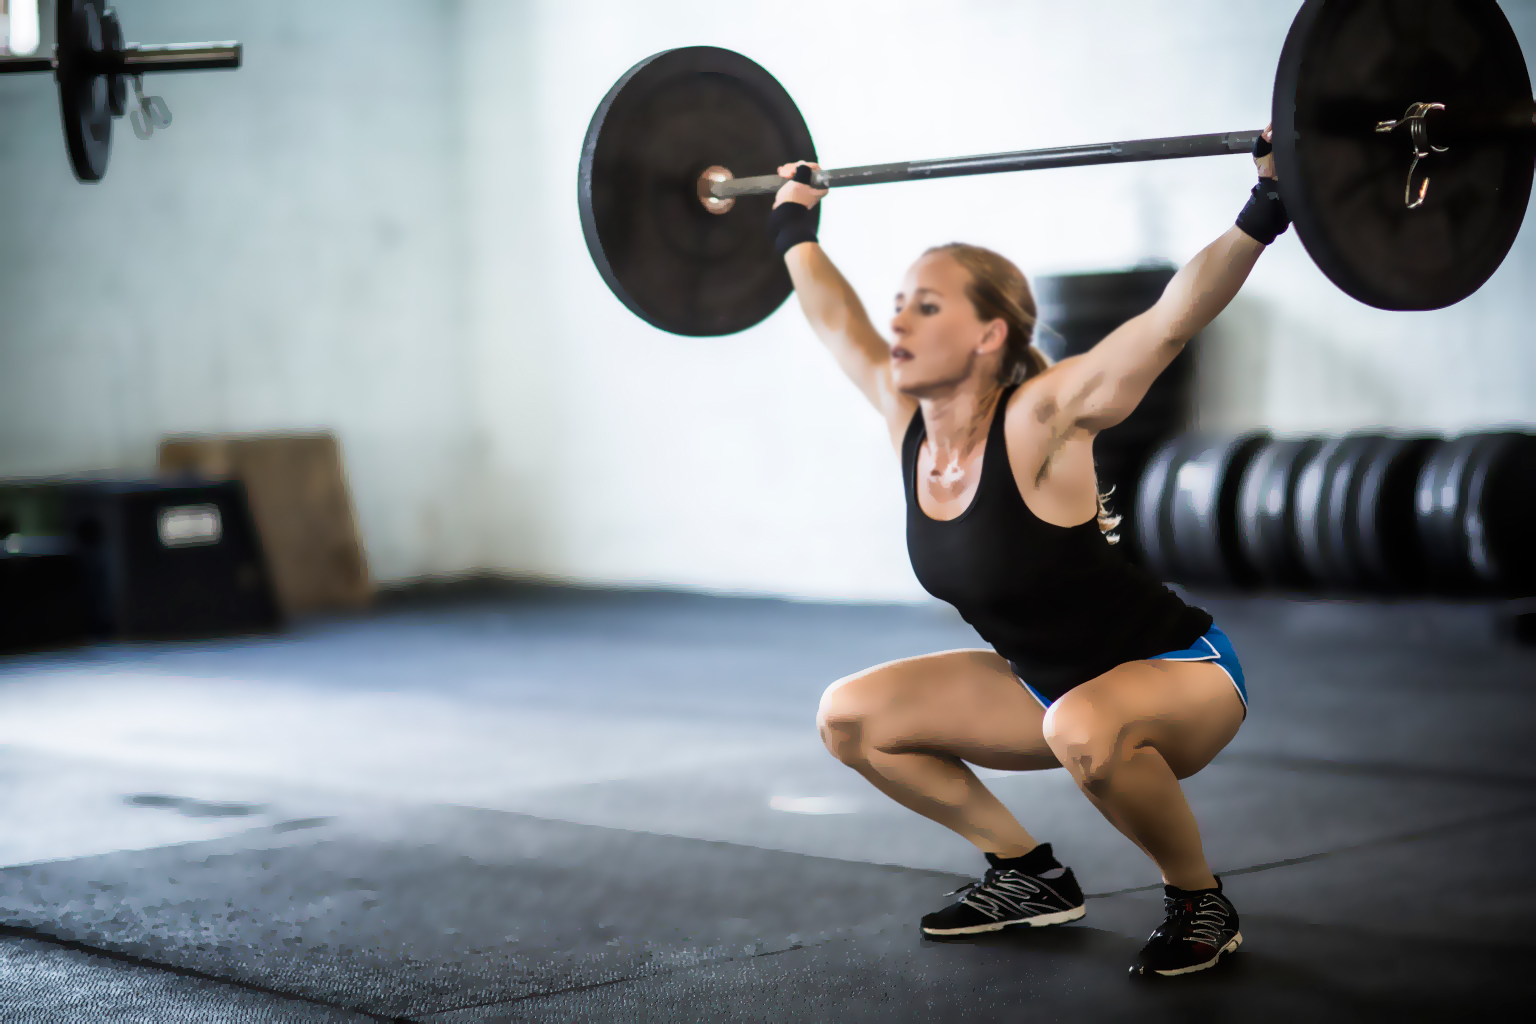 Some Reasons Why Weightlifting is Good For Women